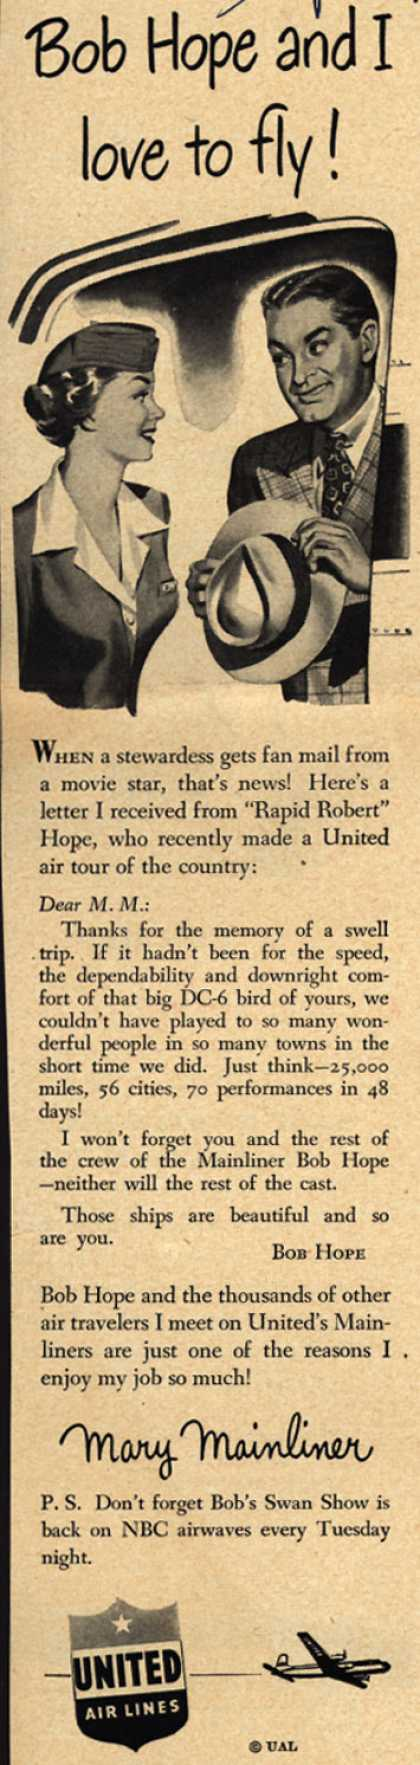 United Air Lines – Bob Hope and I love to fly (1949)